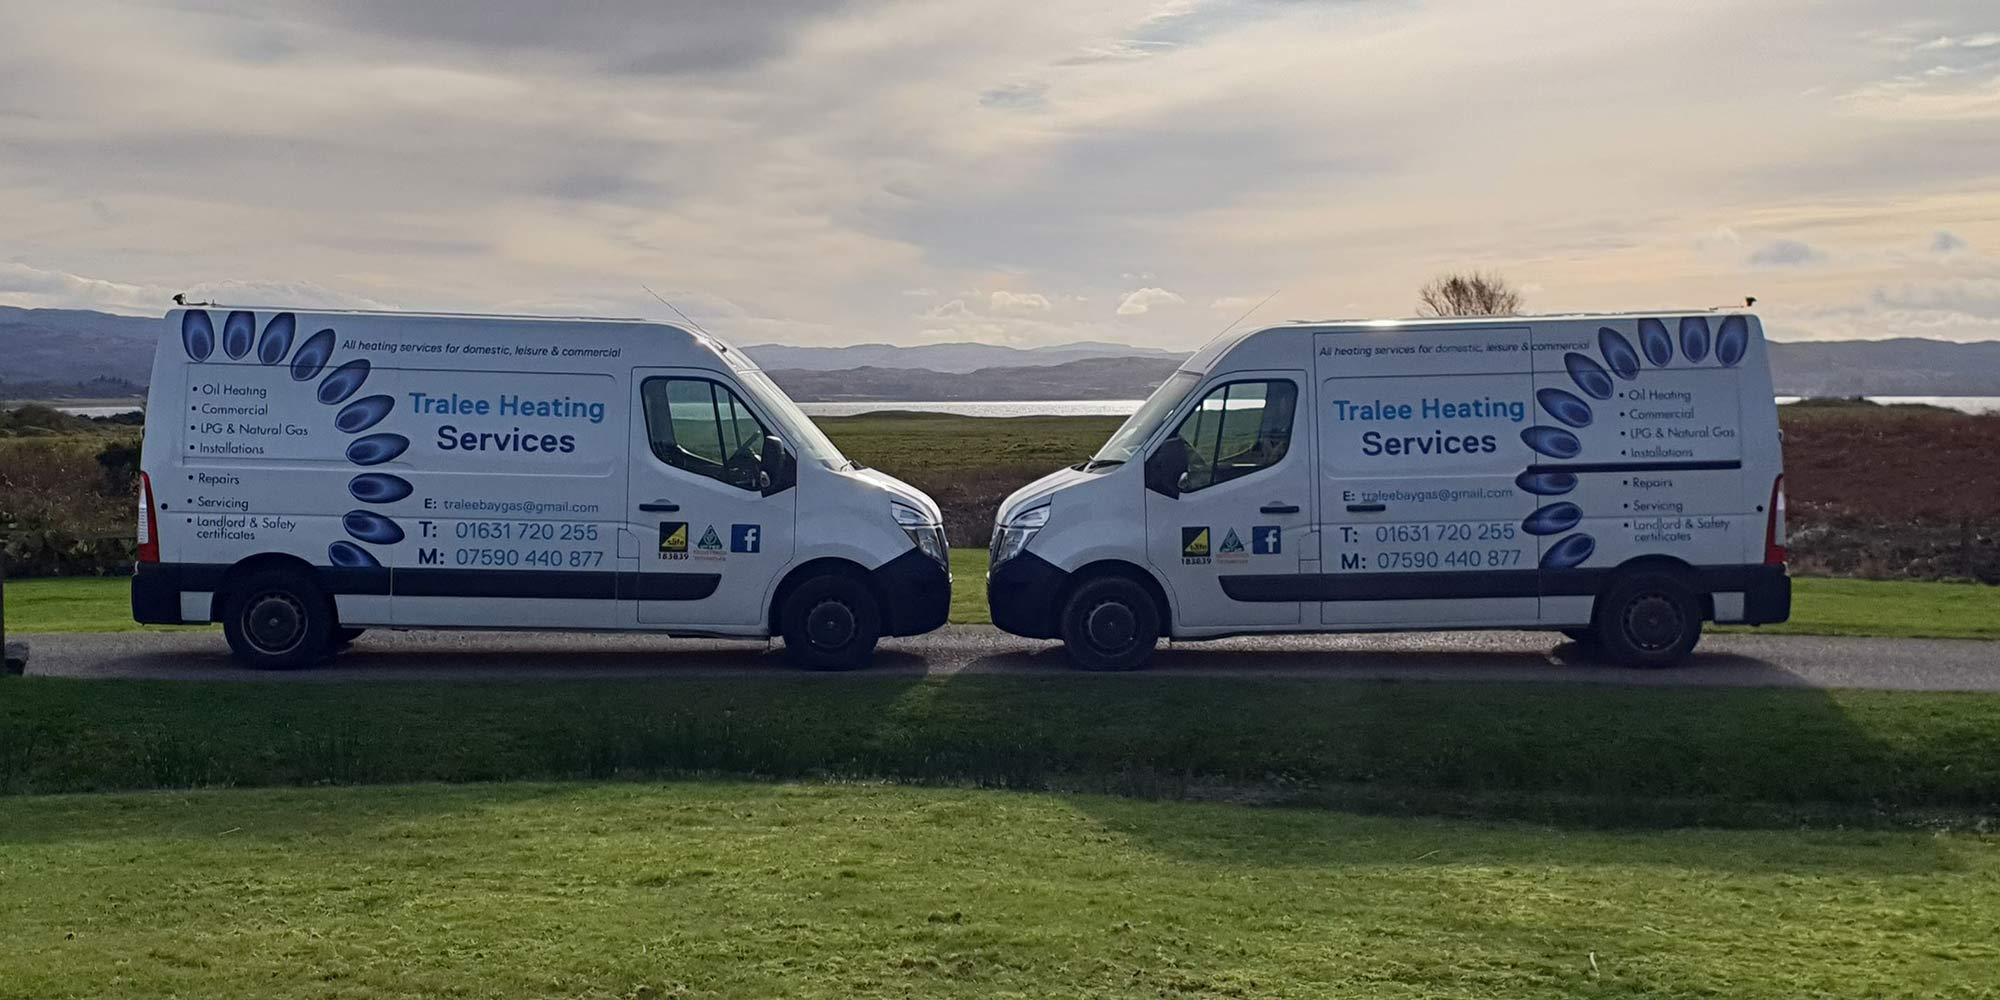 Tralee Heating services